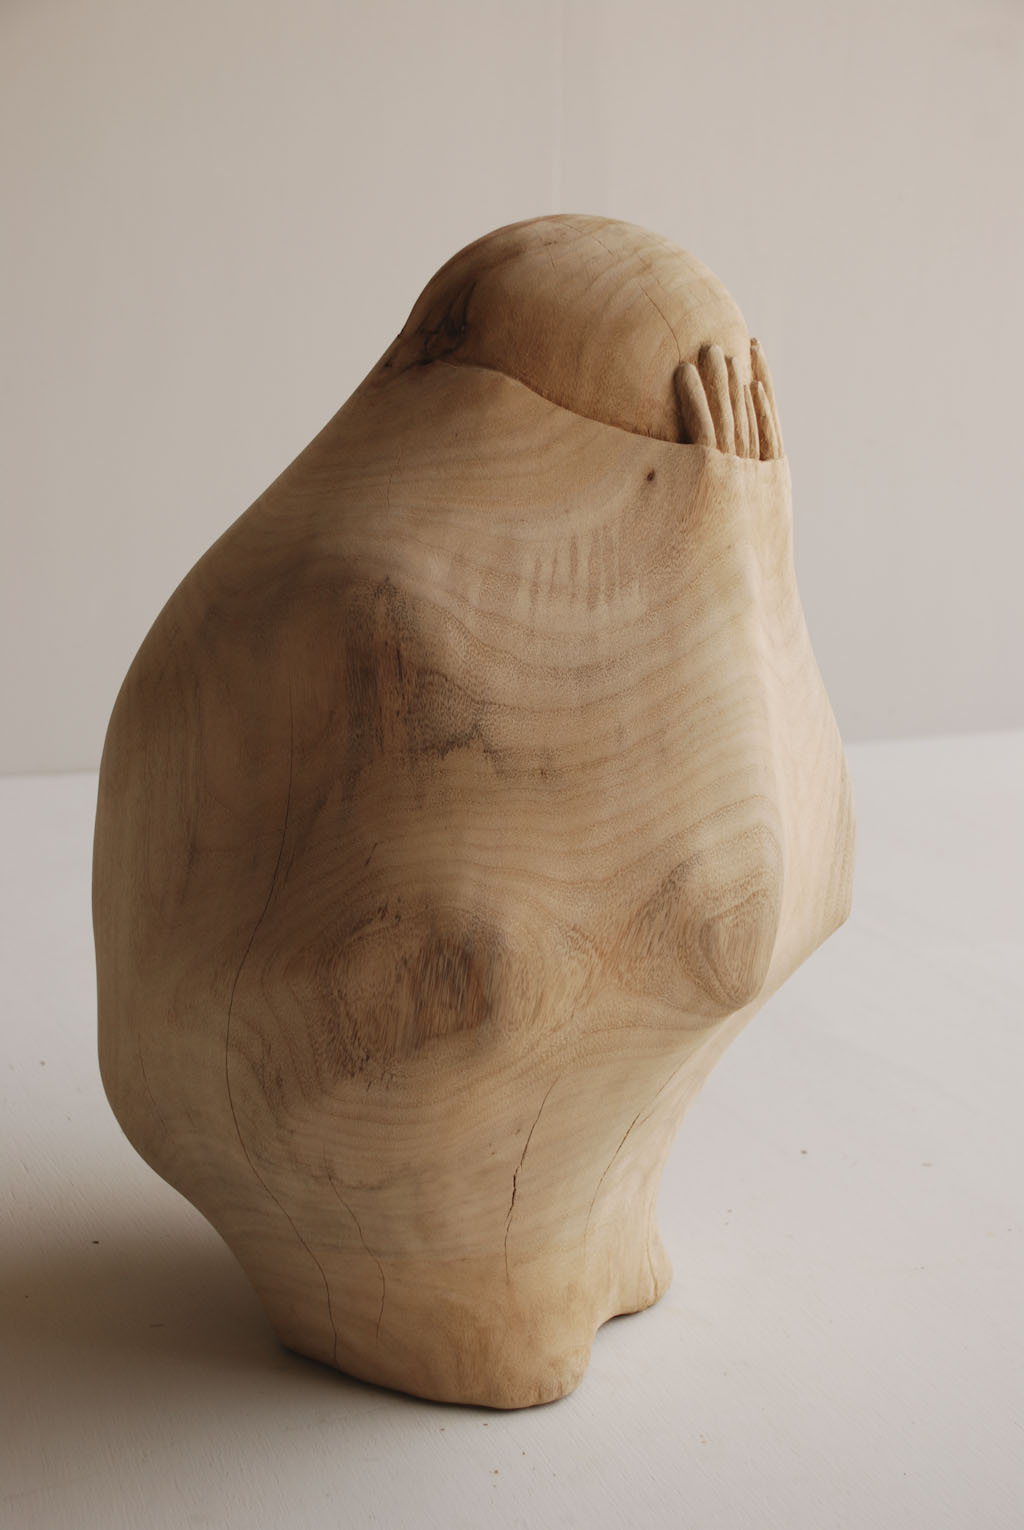 Objects and Figures Trapped Within Carved Wood Sculptures by Tung ...